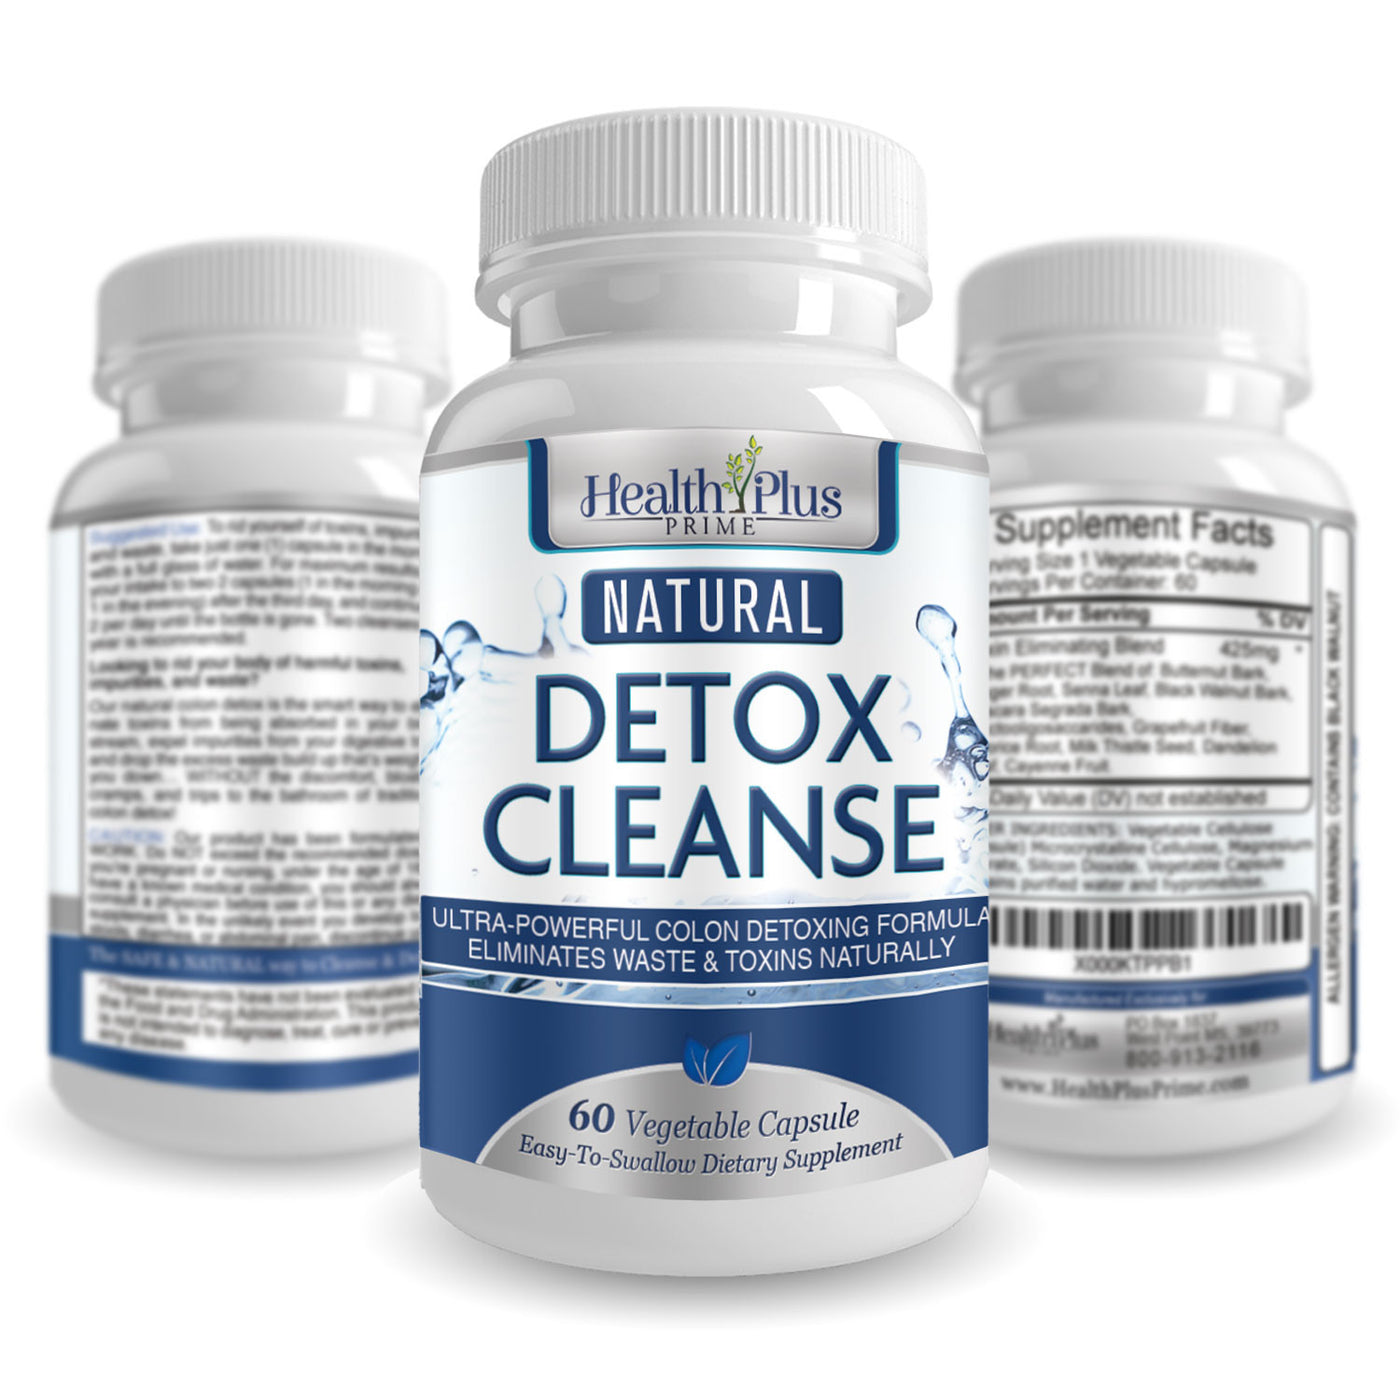 Detox Cleanse - Safe & Natural Colon Cleanse